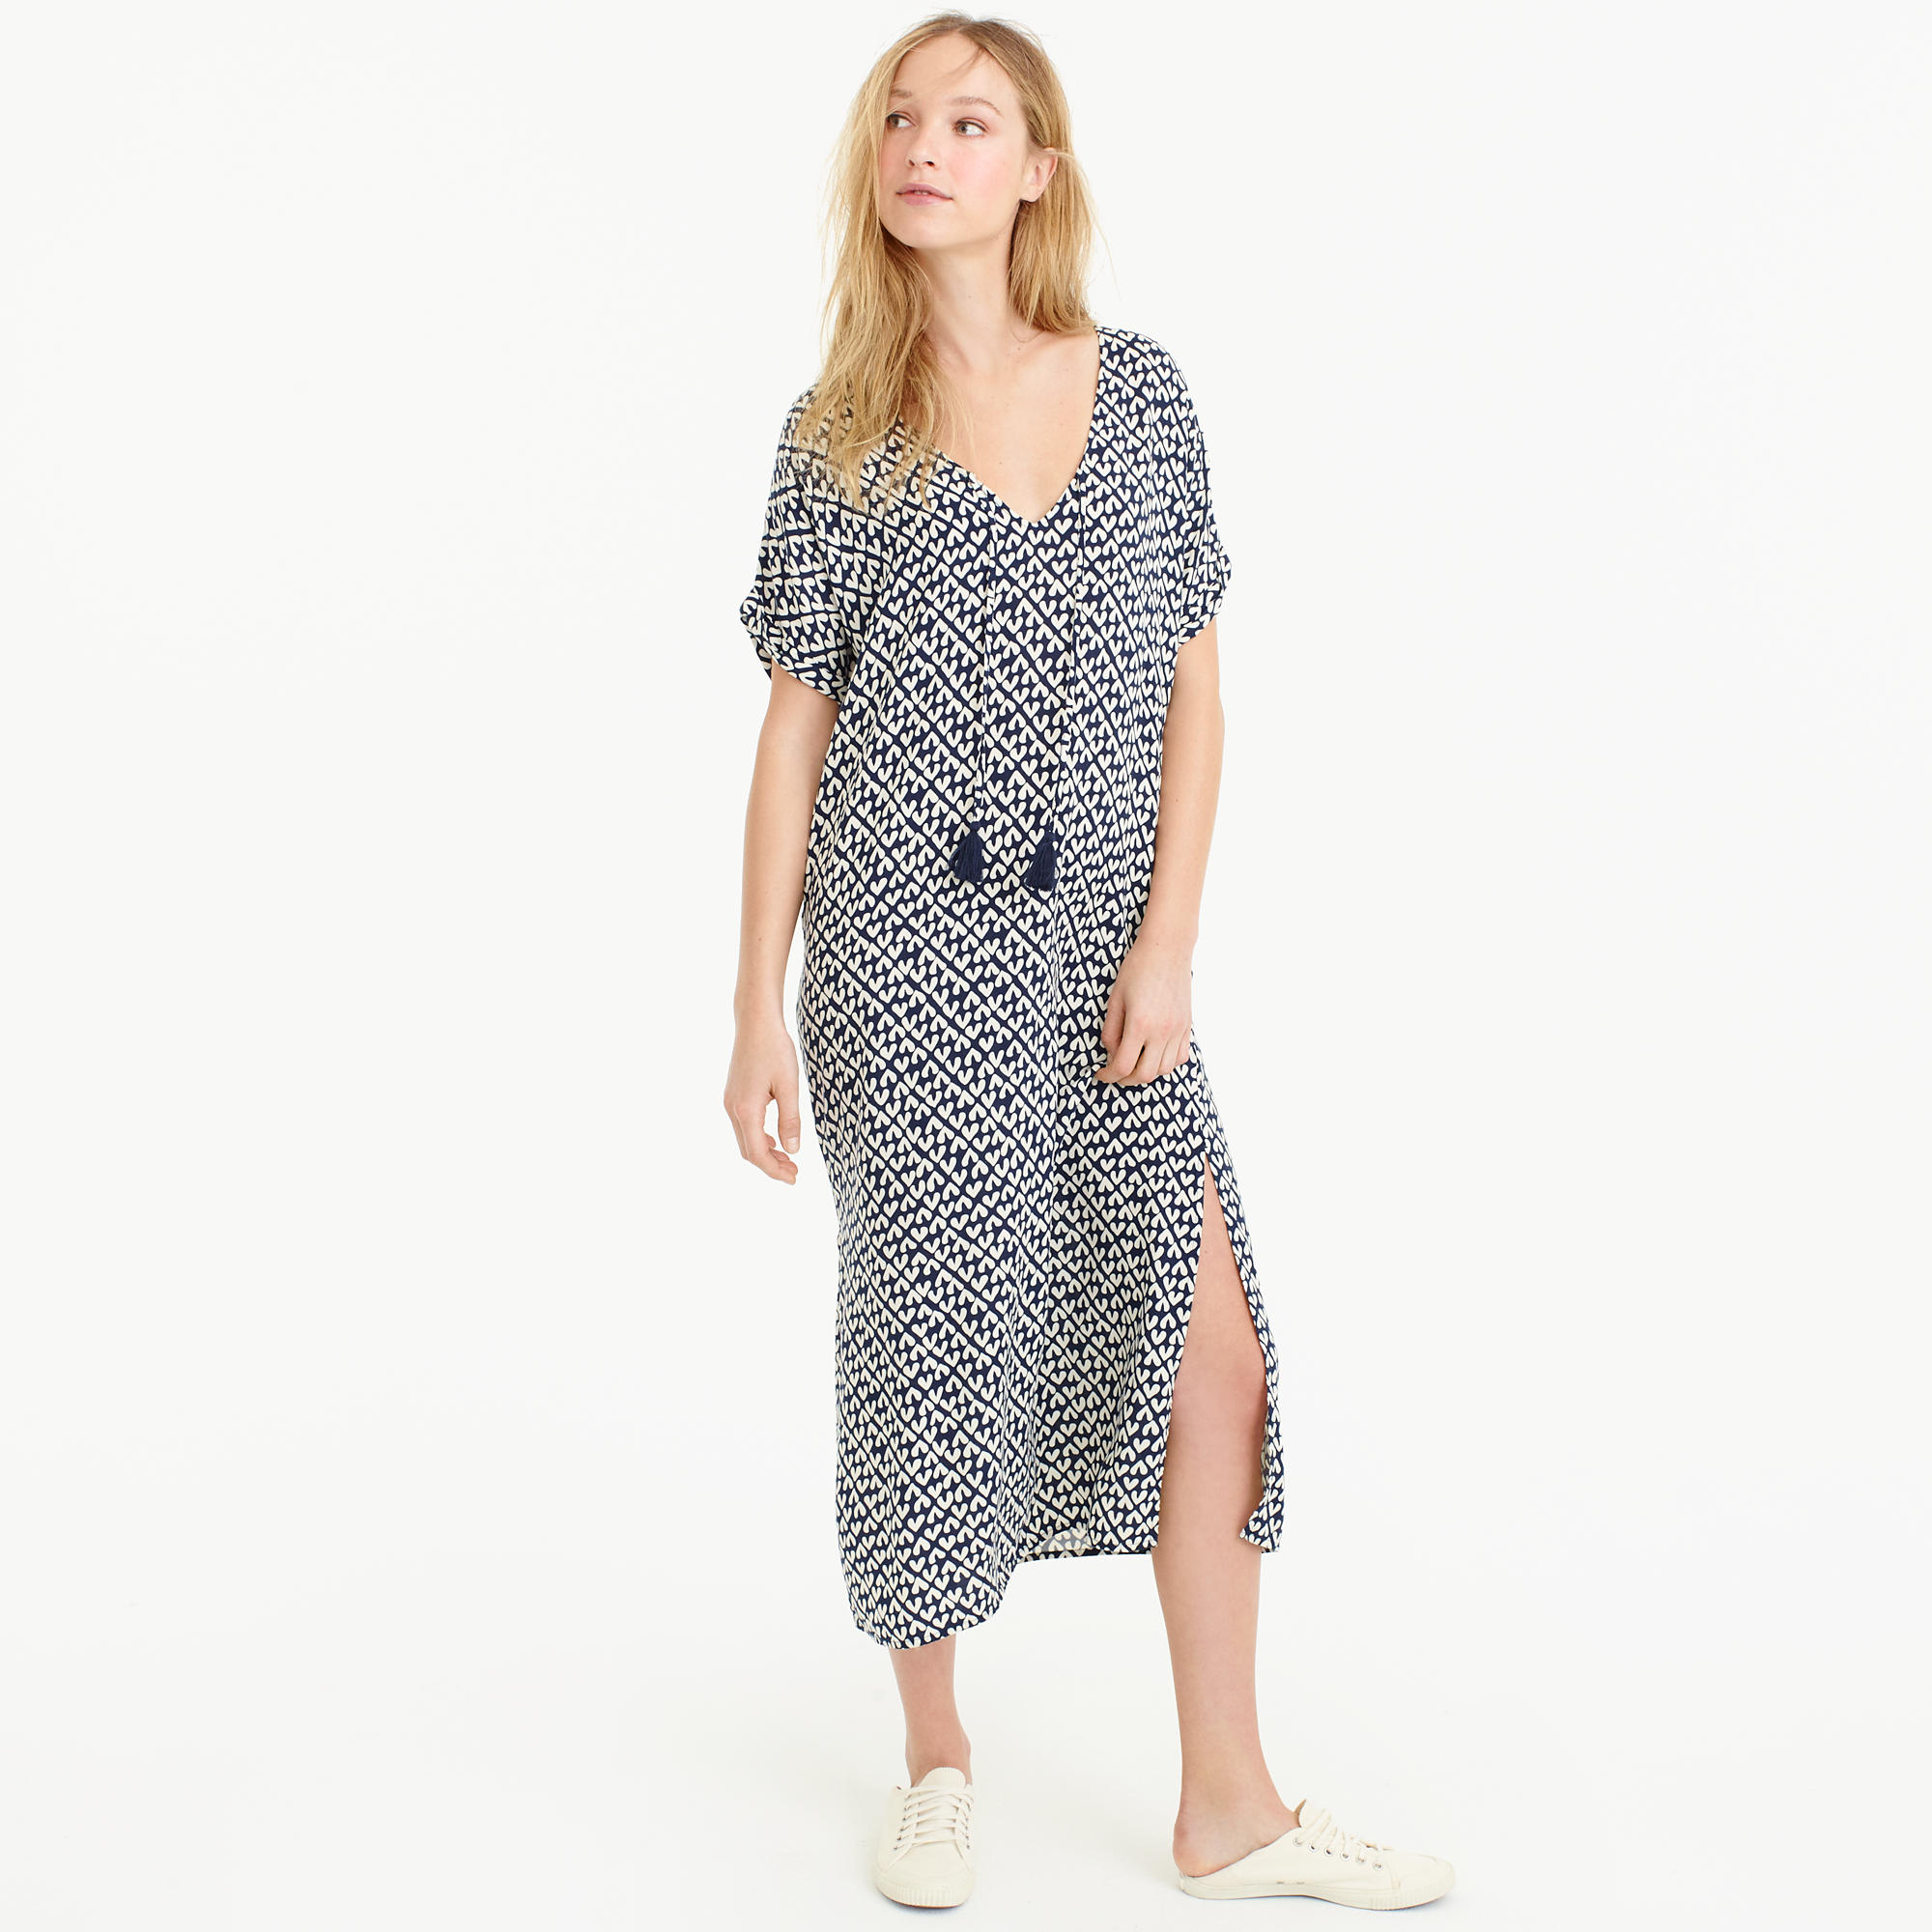 Women&39s Beach Cover Ups &amp Tunics : Women&39s Swimwear  J.Crew